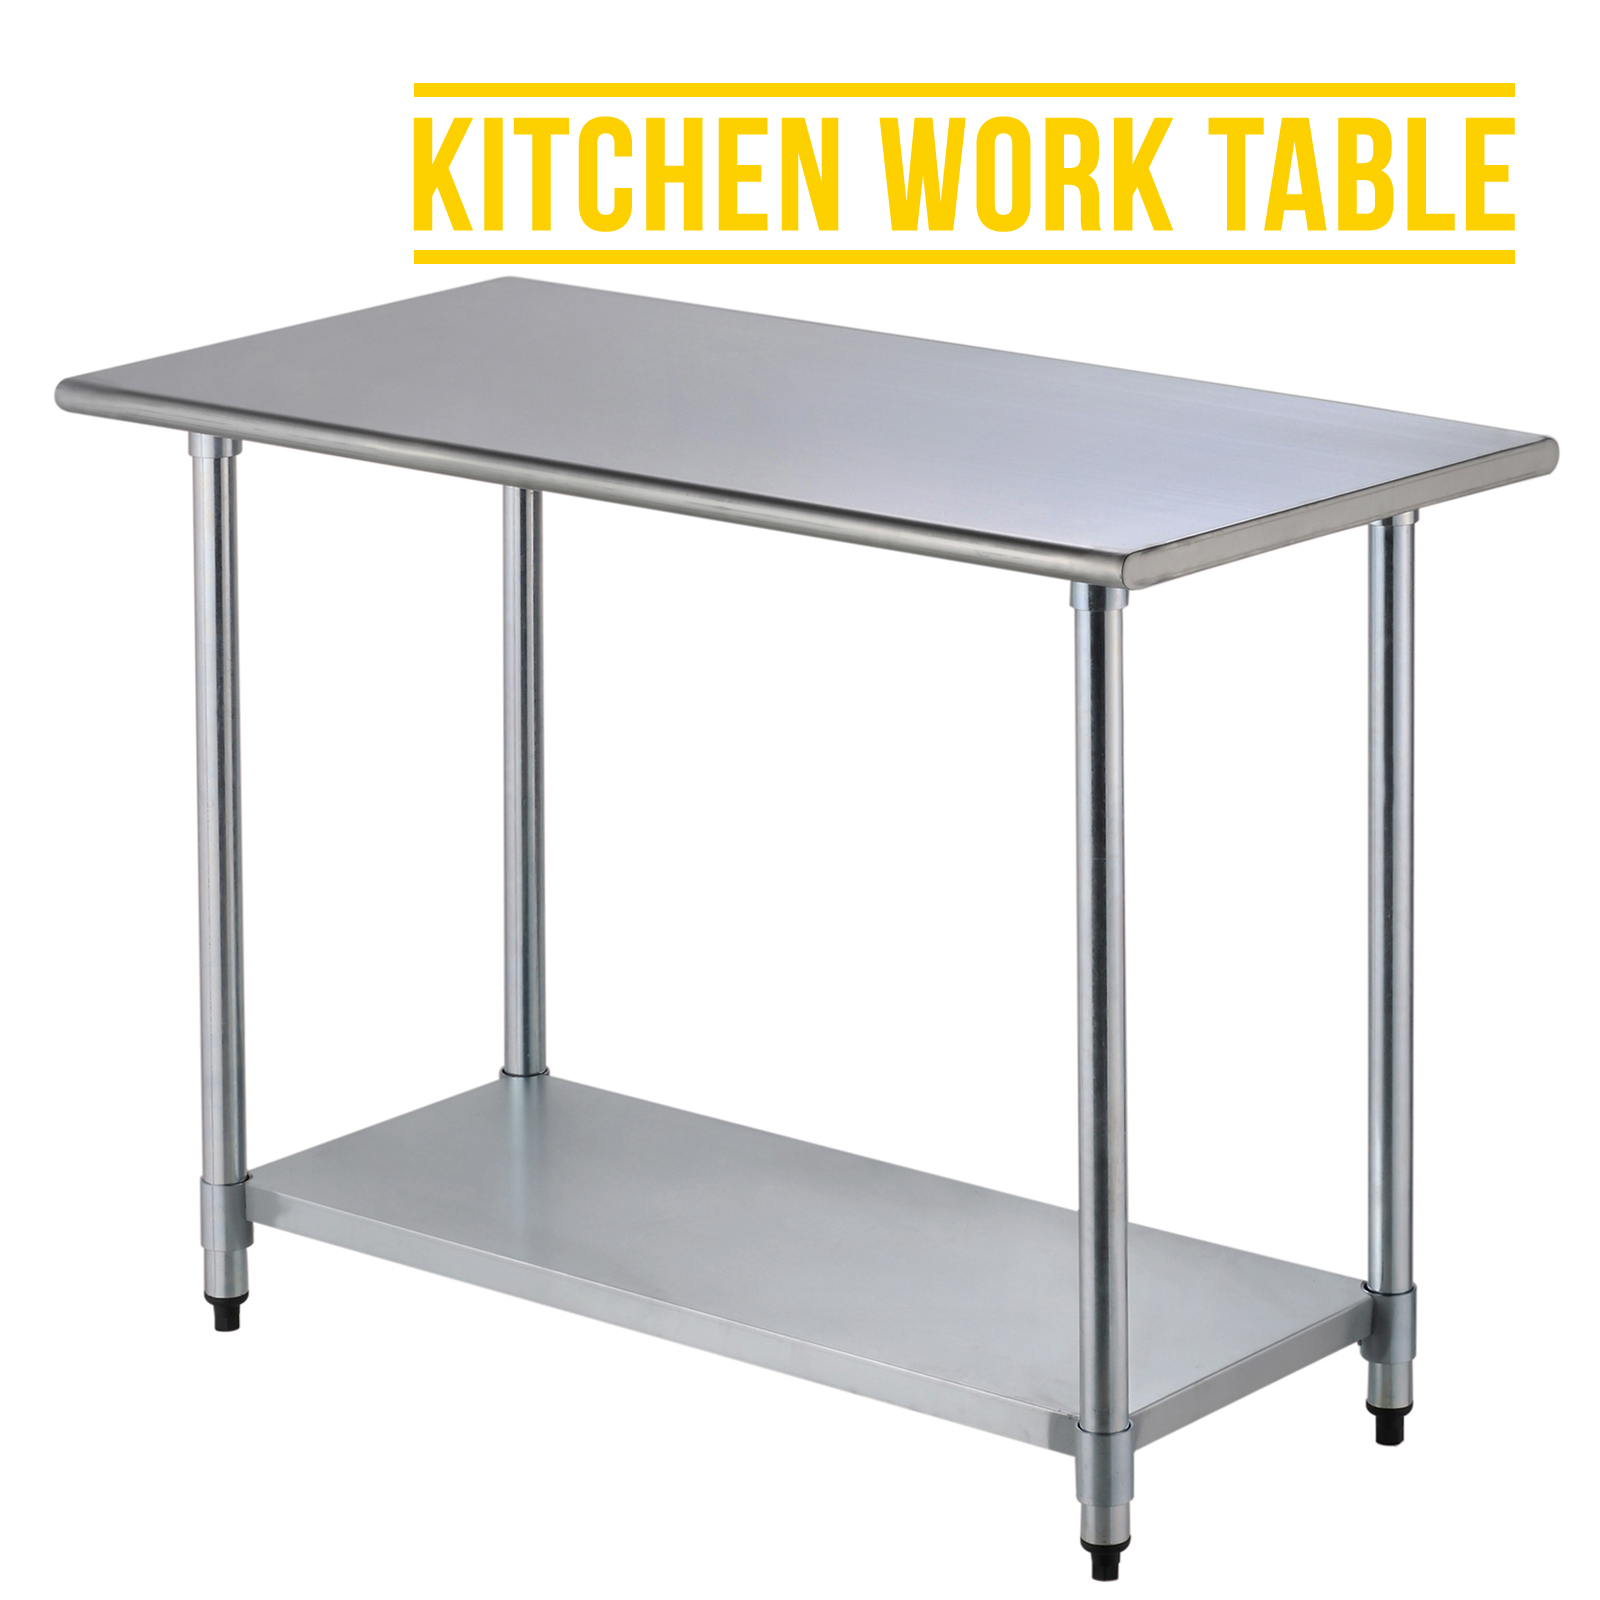 2ft 4ft commercial stainless steel kitchen restaurant work prep table ebay - Industrial kitchen tables ...